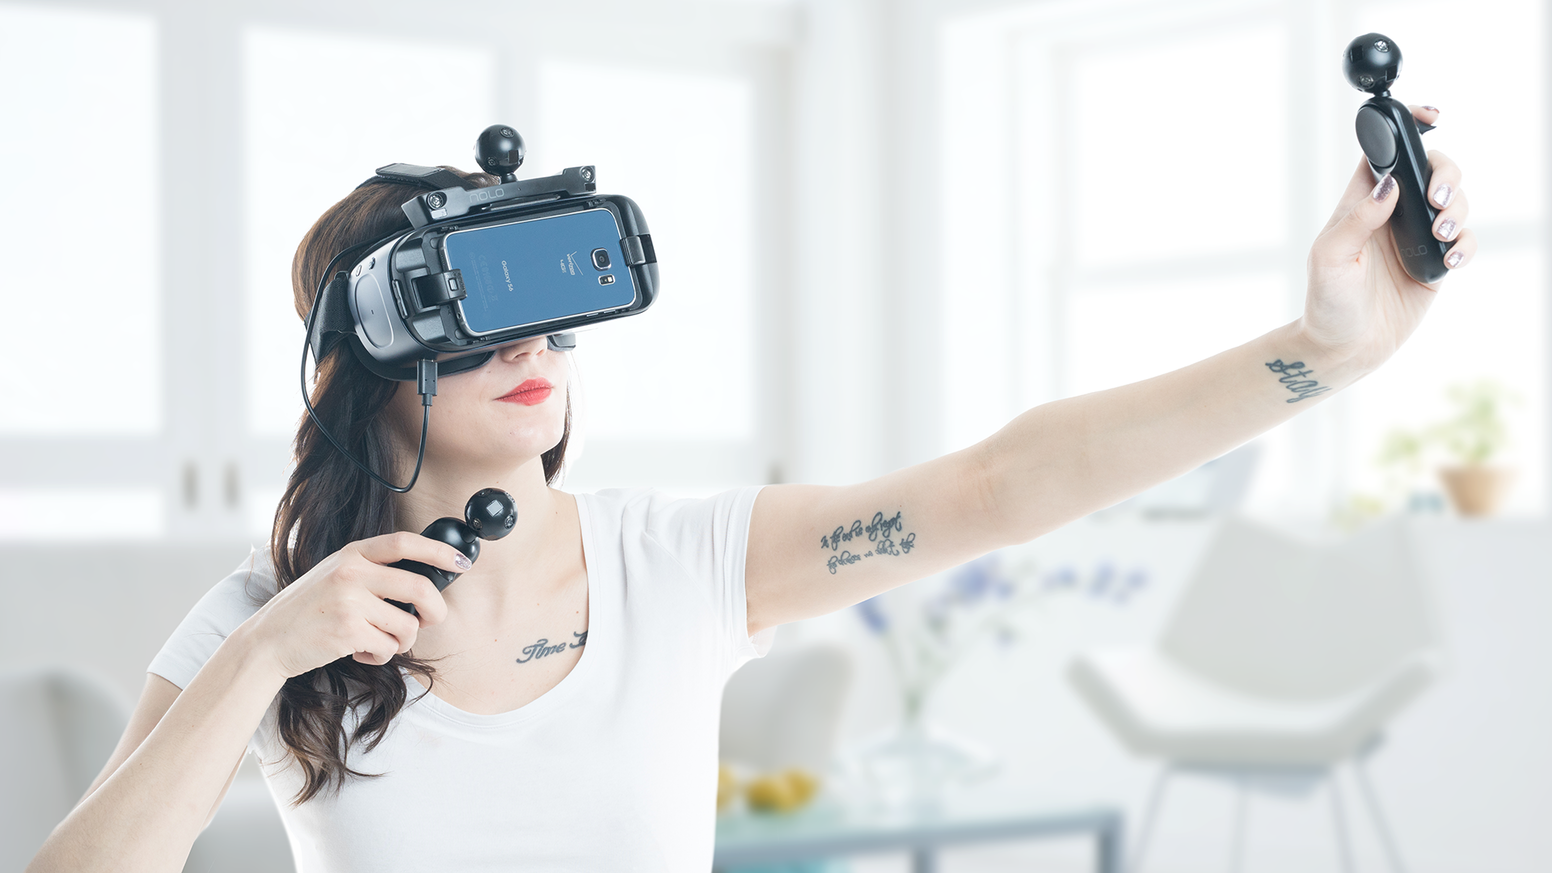 Nolo vr motion tracking for mobile and steamvr play by lisa zhao 6 dof motion tracking system front facing room scale low latency android solutioingenieria Image collections